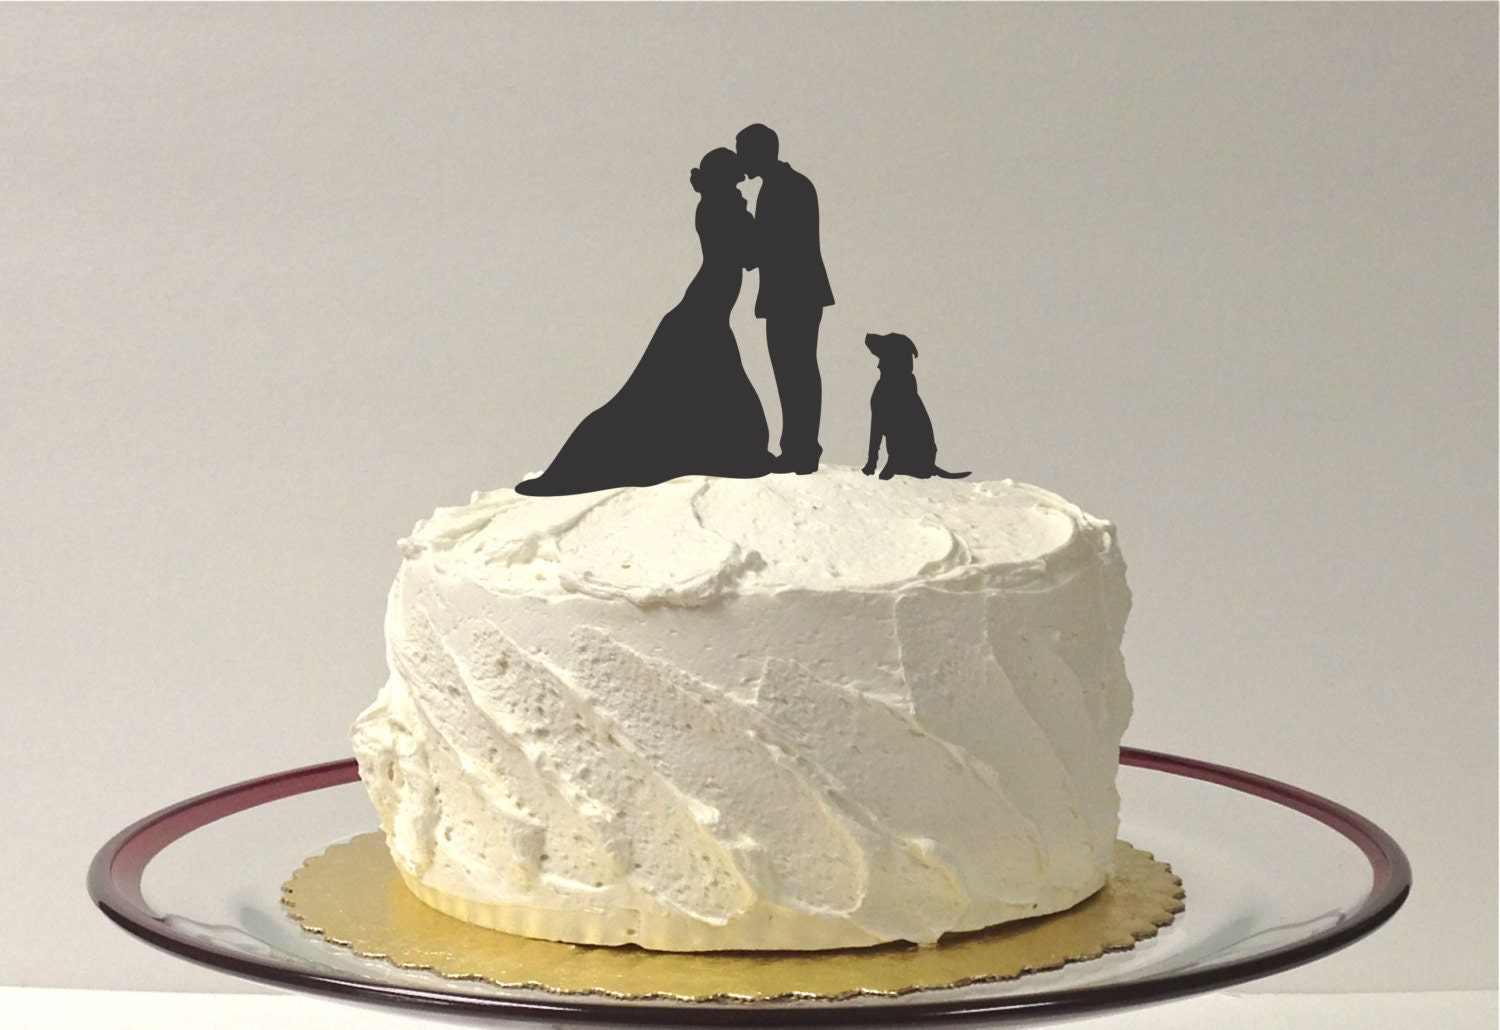 MADE In USA Silhouette Cake Topper With Pet Dog 48 Different